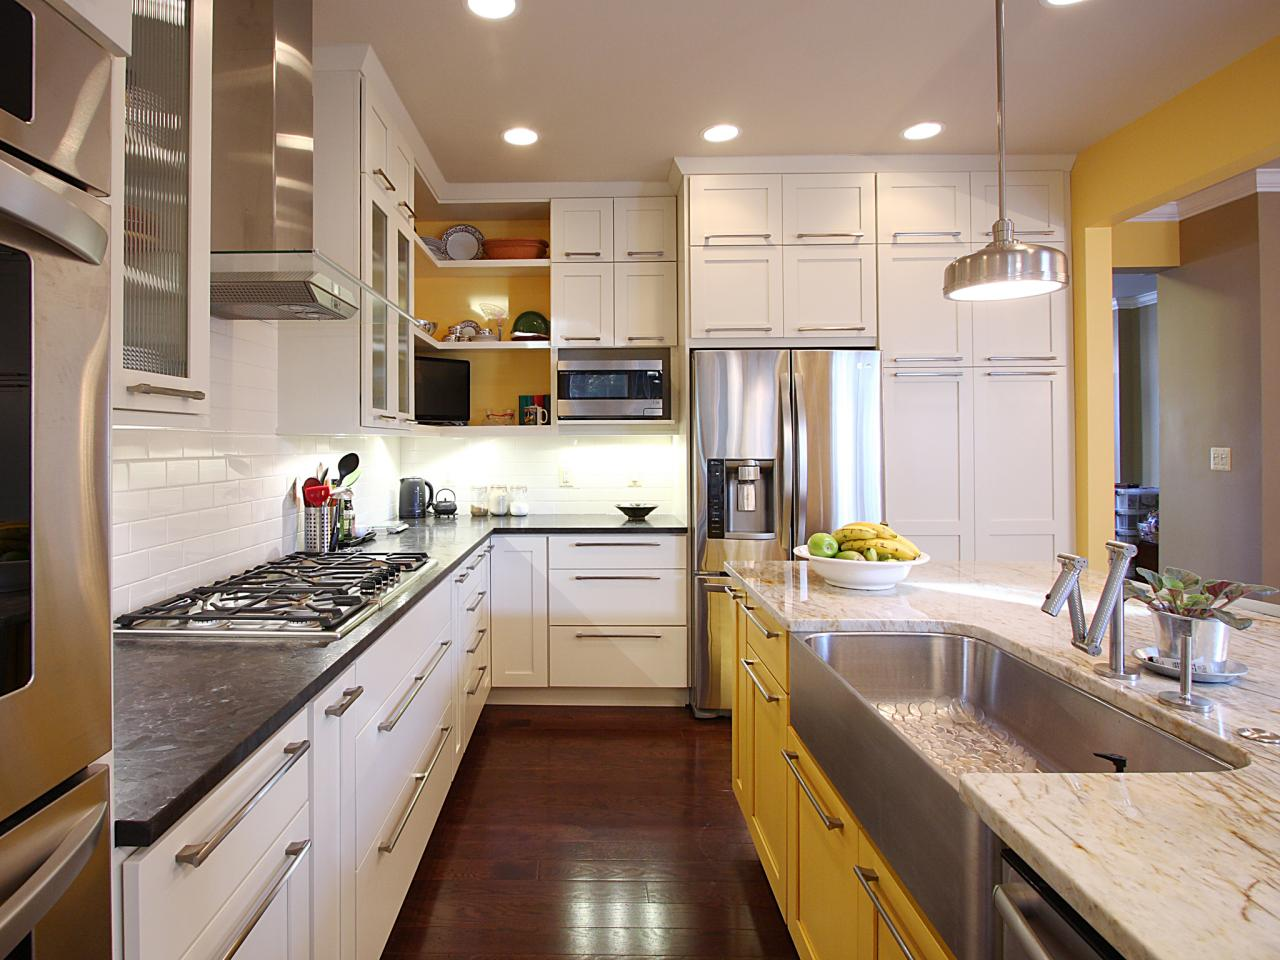 White Paint Kitchen Cabinets and Yellow Island on Laminate Oak Flooring in Cozy Kitchen